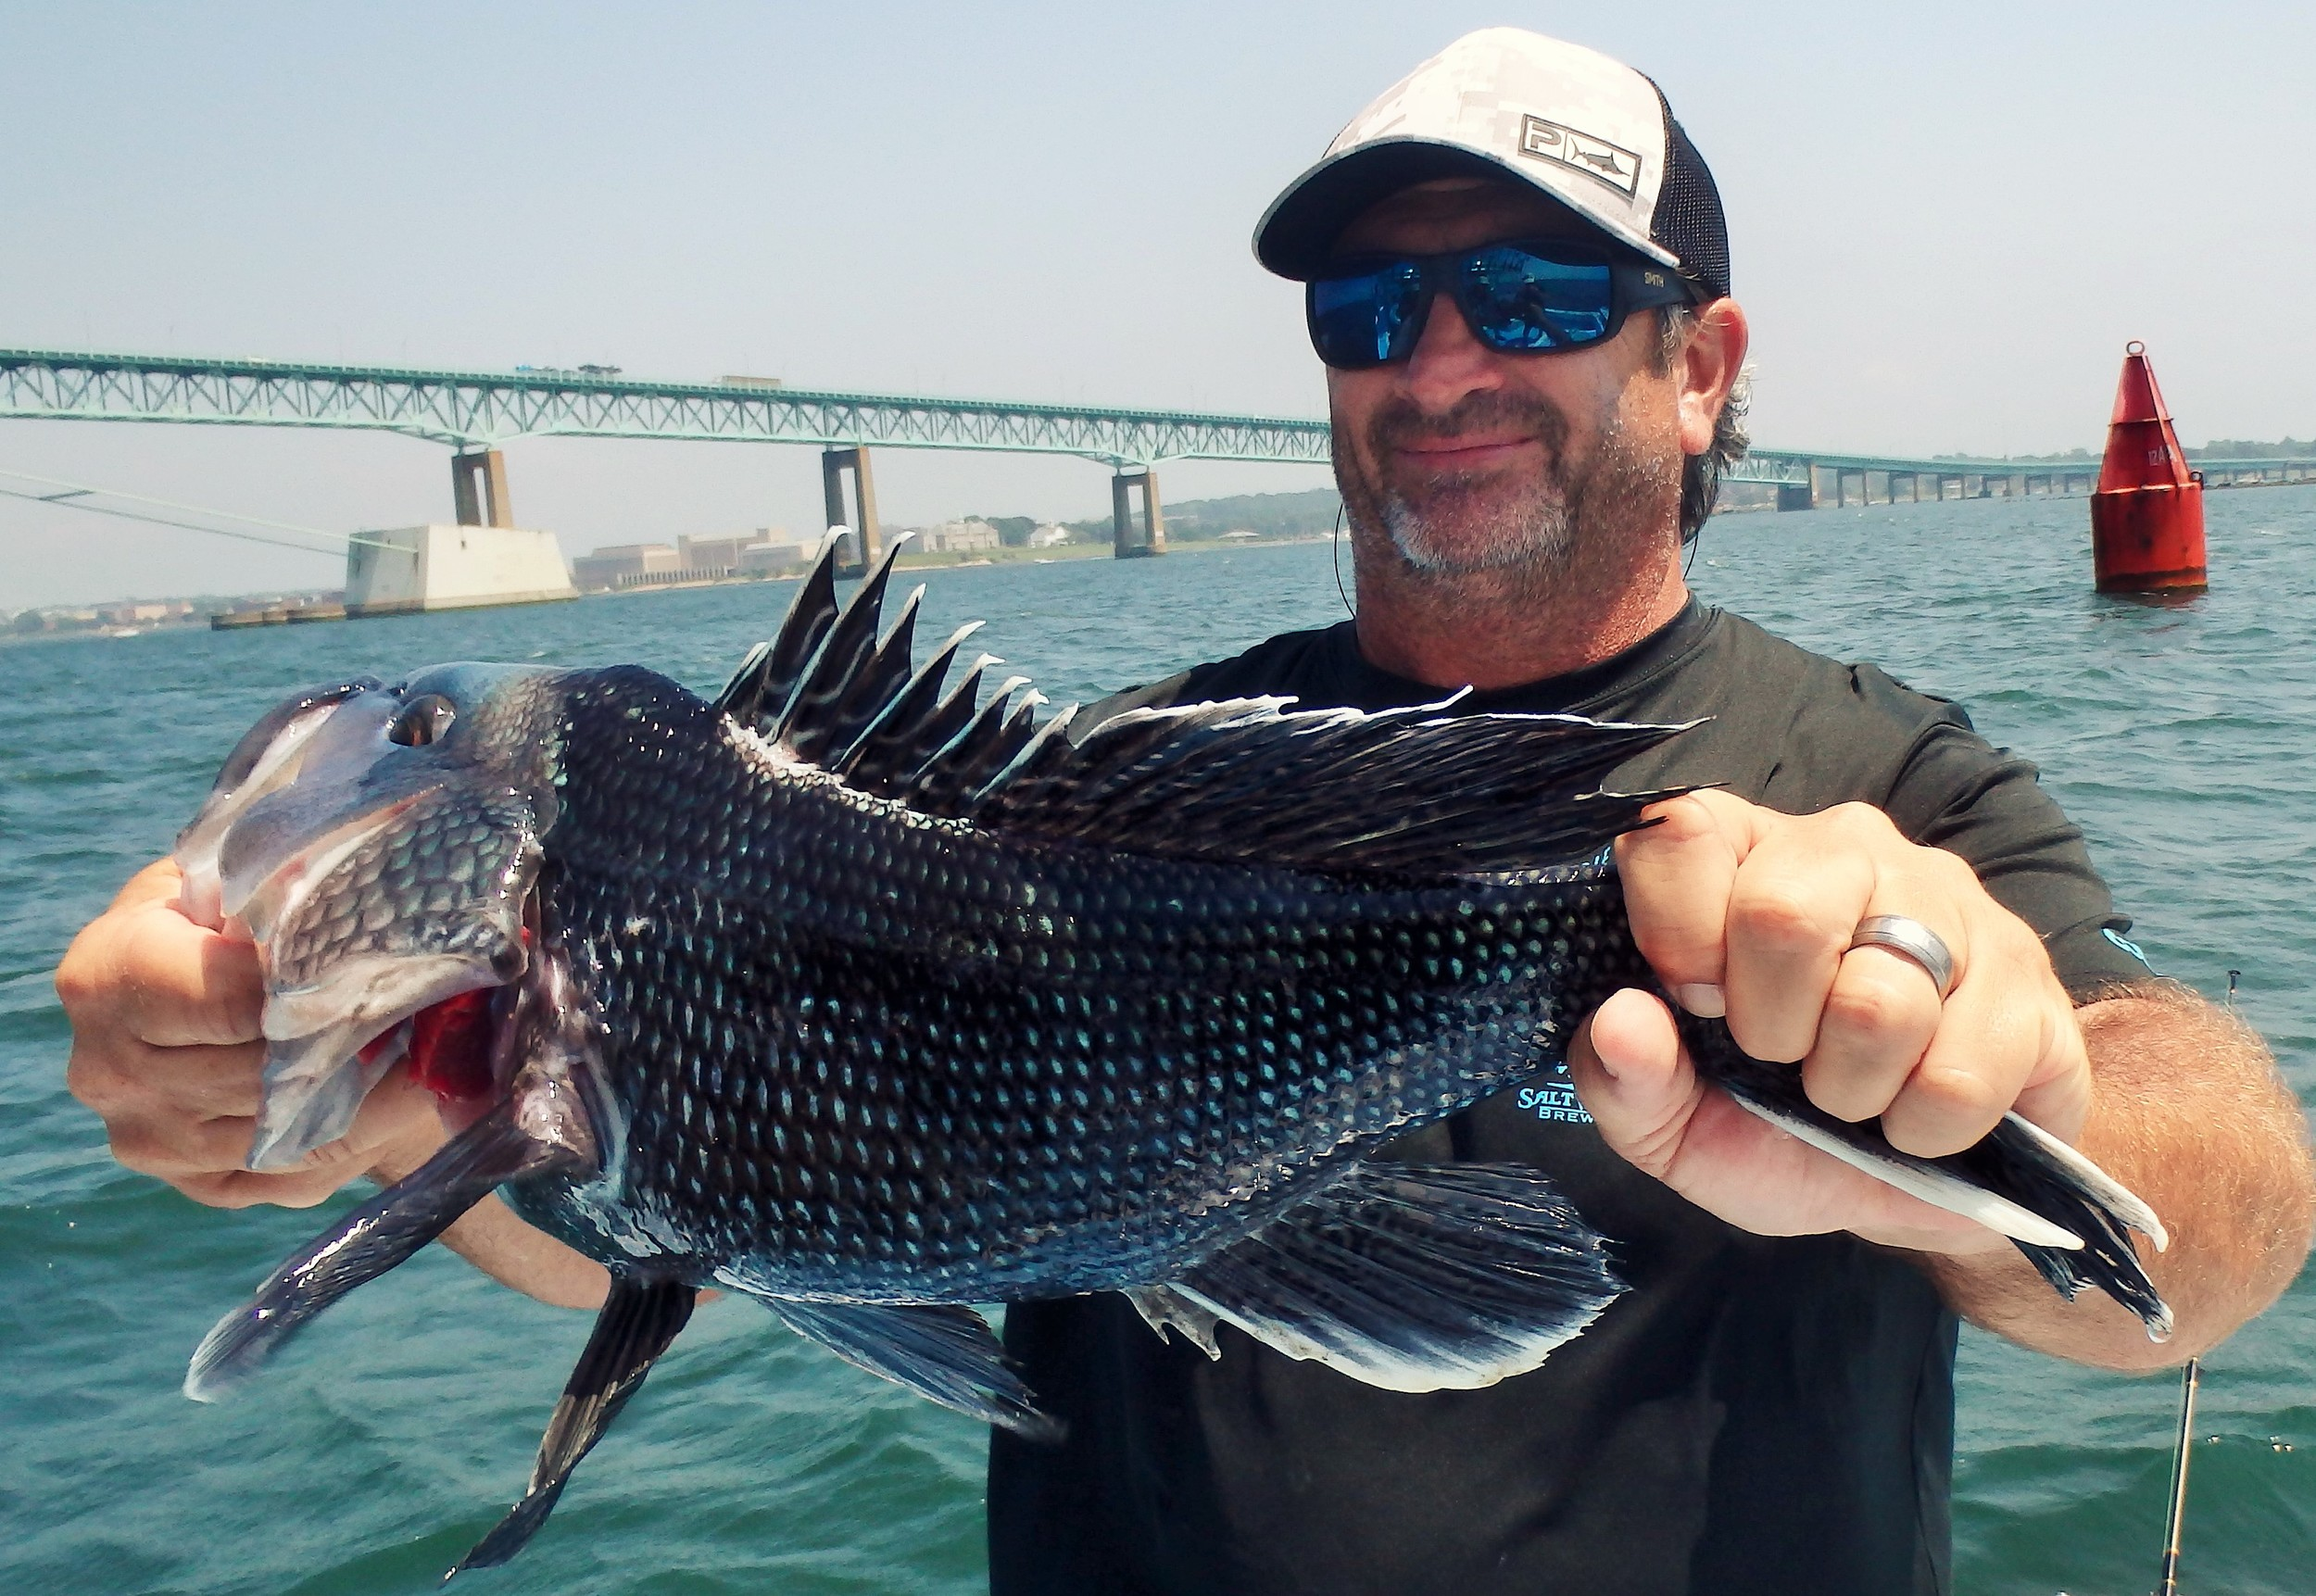 Newport black sea bass bite was good for Joe Roth of Boca Raton, FL who fished the bridge area with success Wednesday. He and wife Linda were fishing with cousin Kevin Fetzer of East Greenwich.